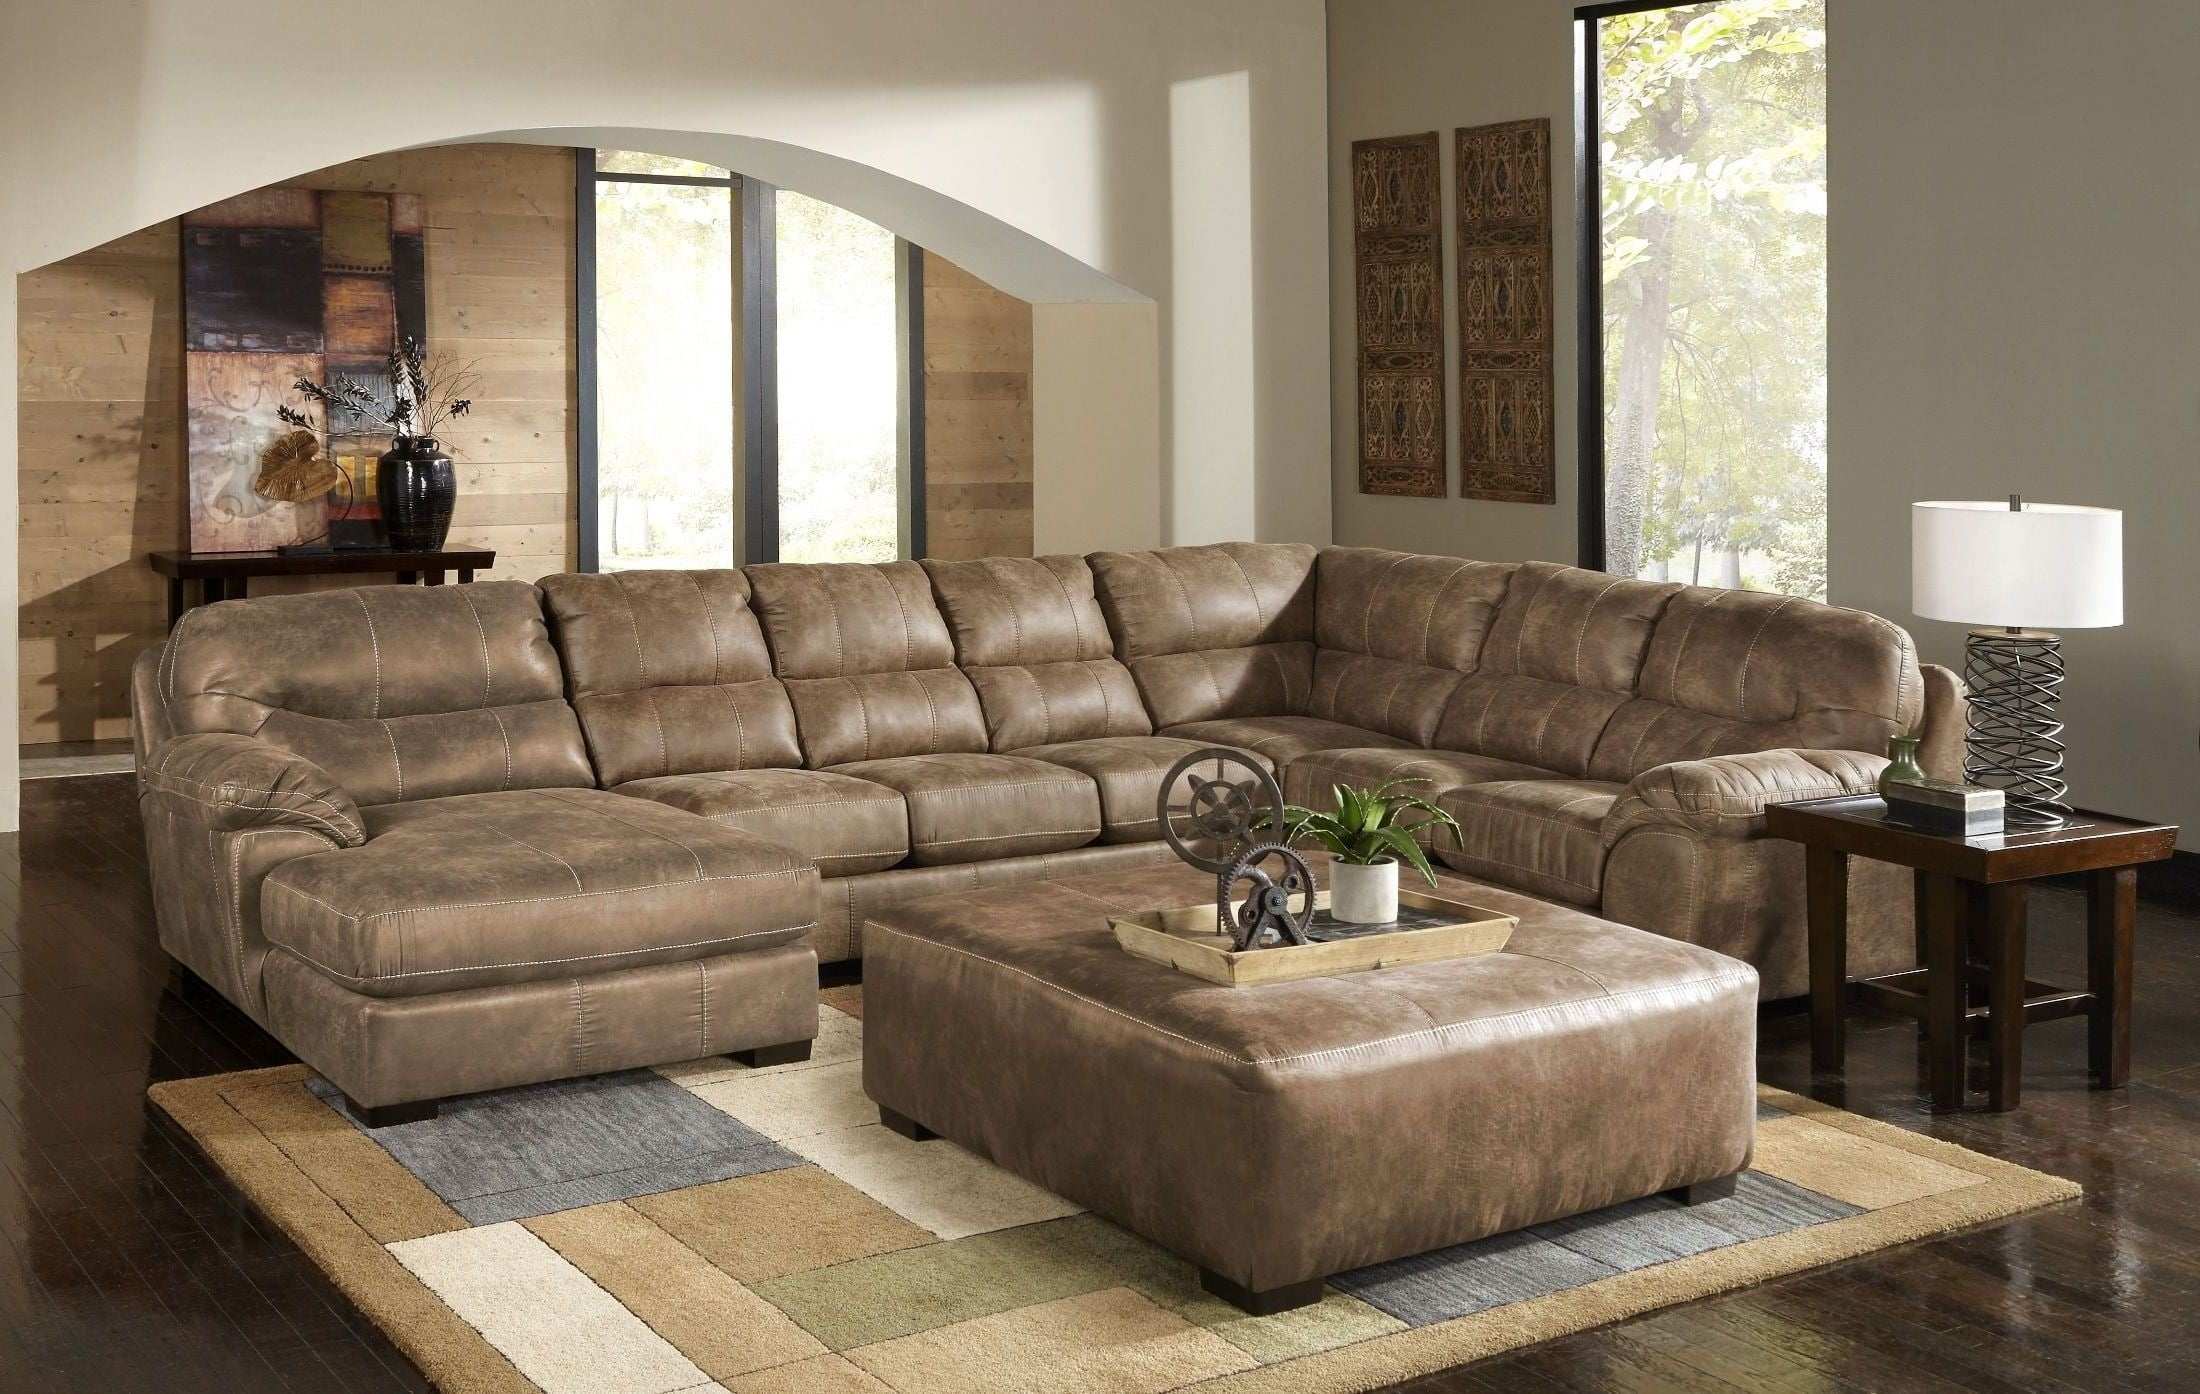 Grant Silt Laf Chaise Sectional, 4453 75 122749302749, Jackson In Avery 2 Piece Sectionals With Raf Armless Chaise (Image 13 of 25)